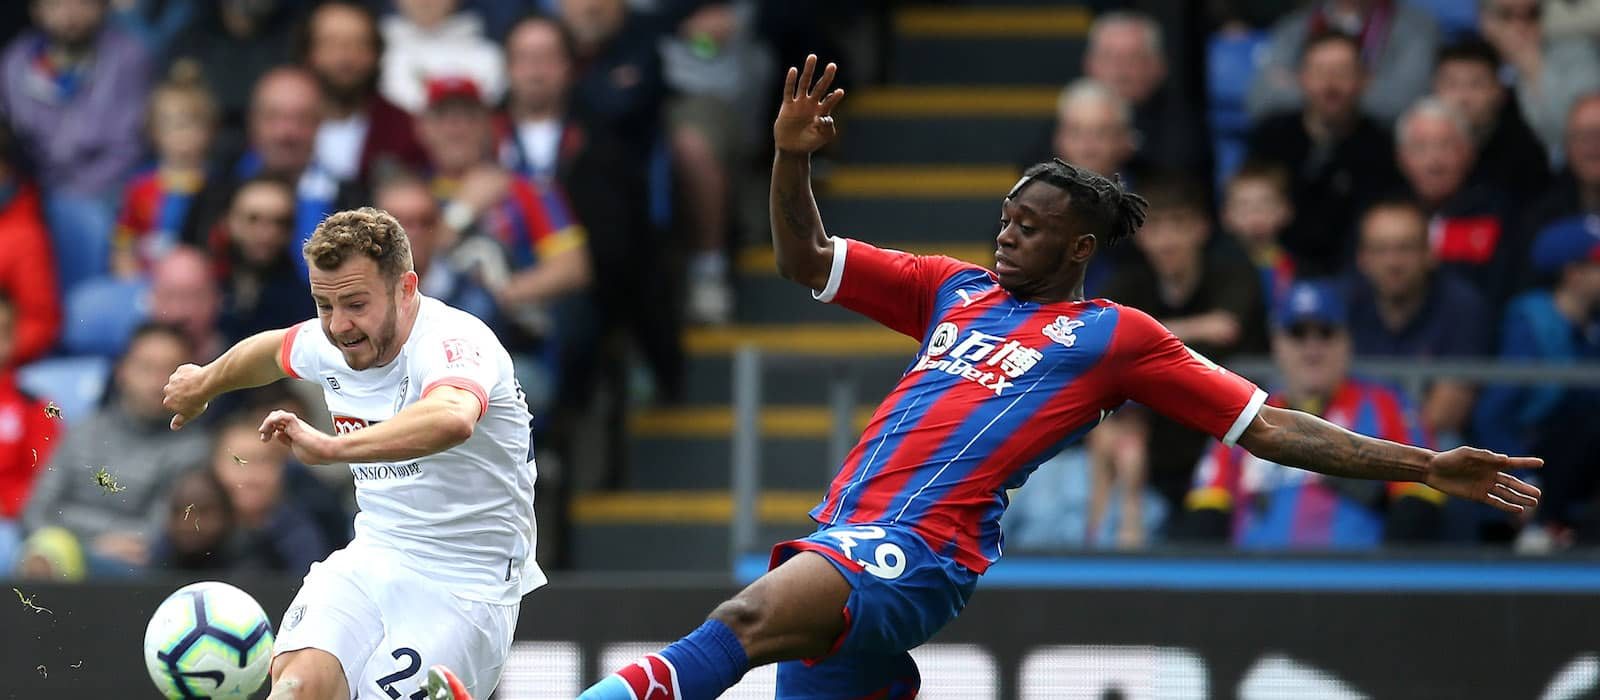 Aaron Wan-Bissaka move to Manchester United almost confirmed